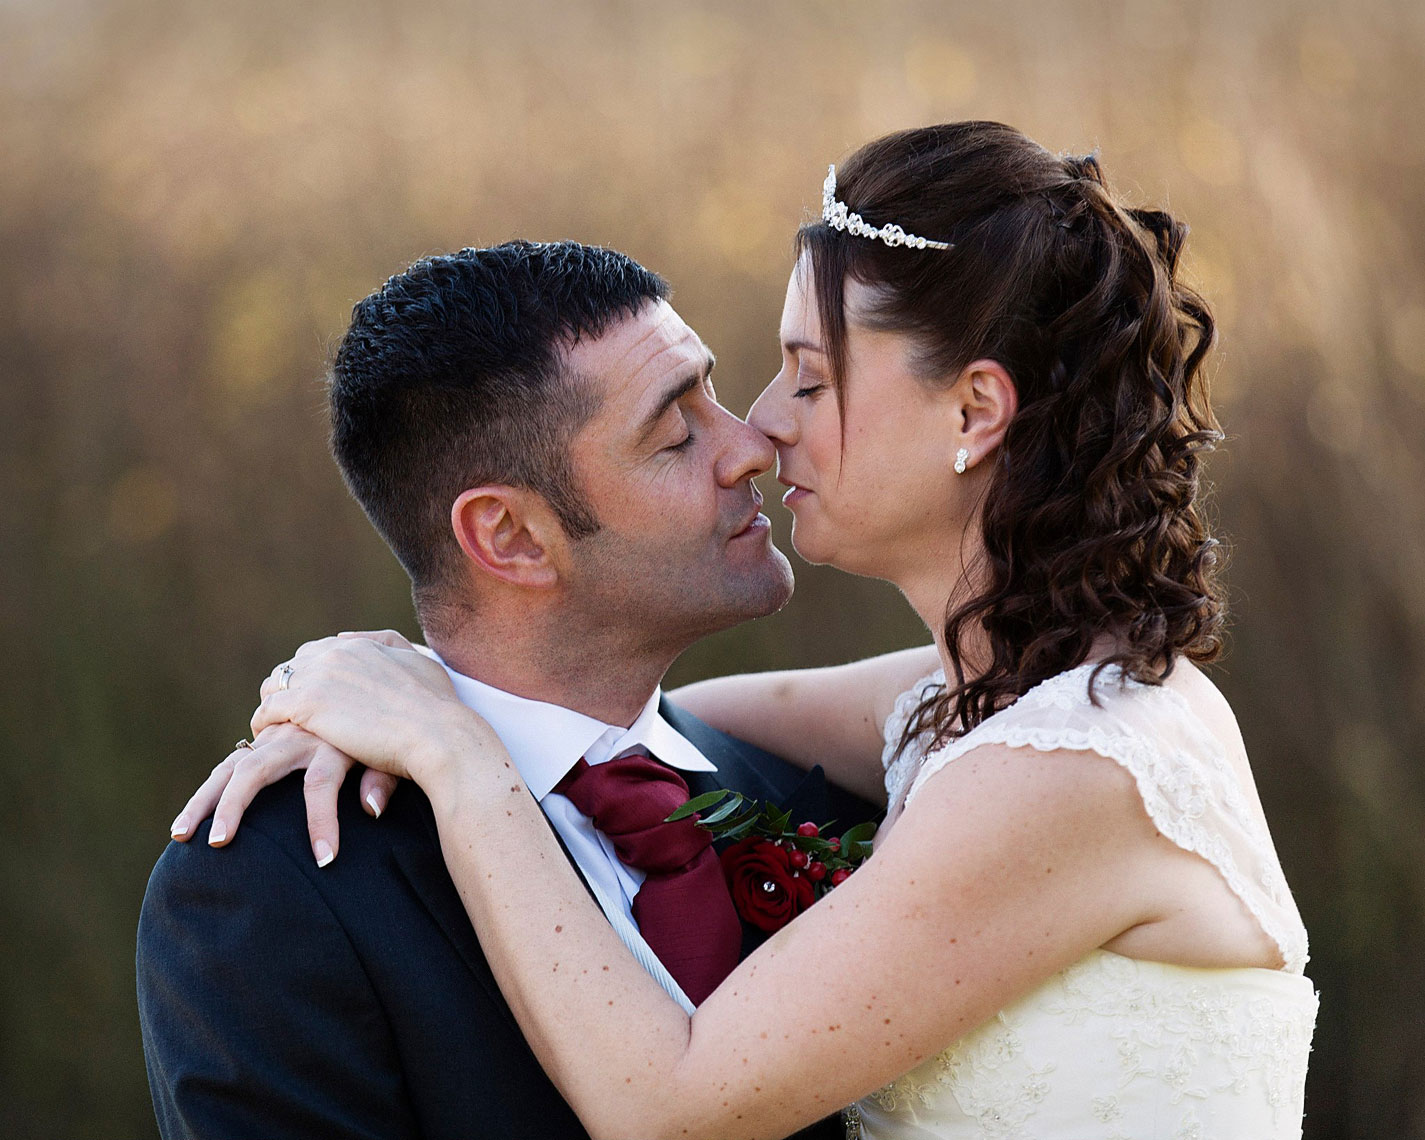 Groom cradling bride and kissing one another with brown shimmering background of sun setting on fields